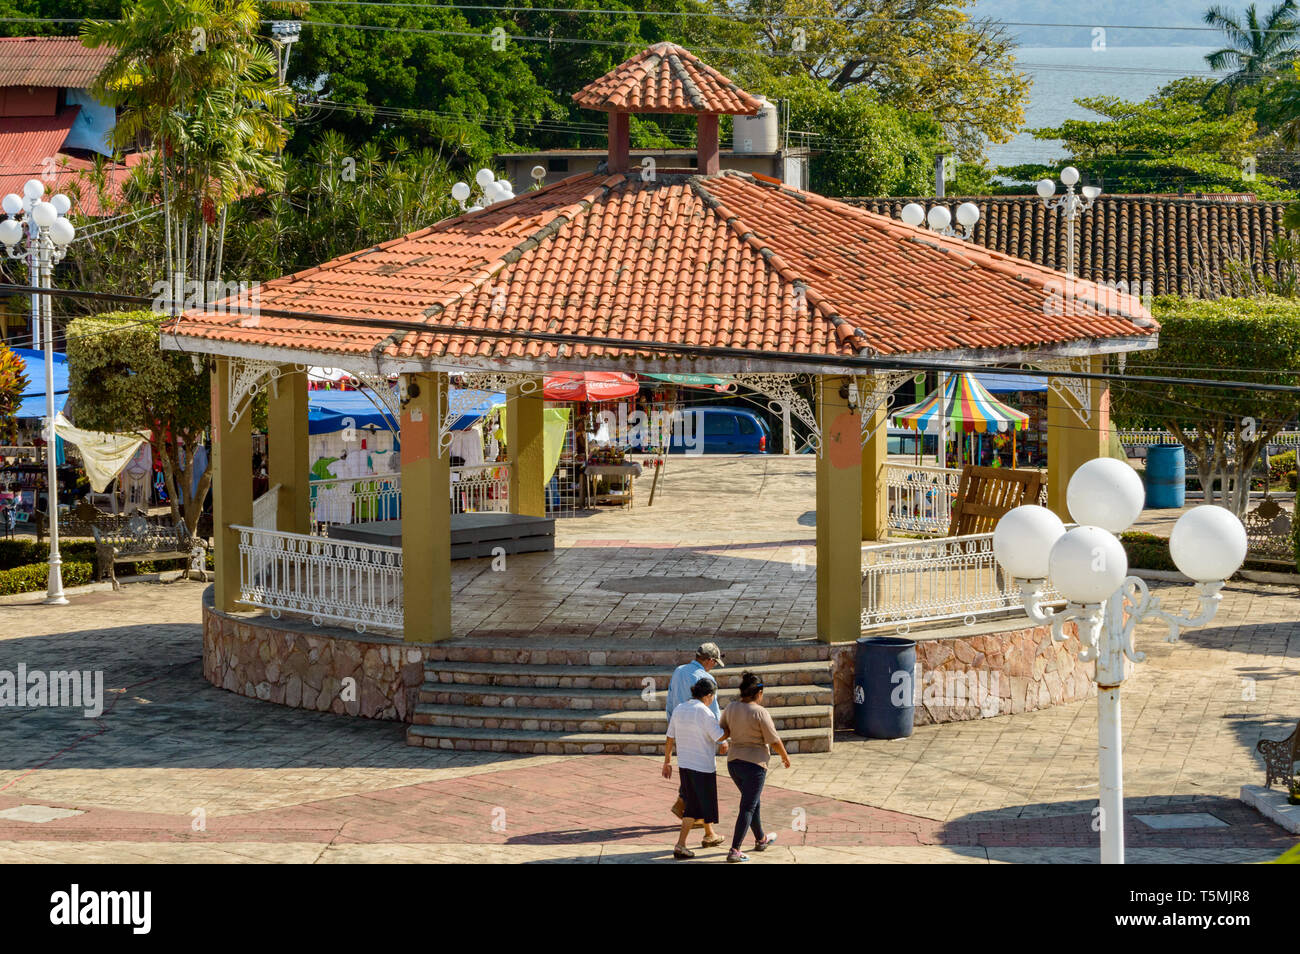 Kiosko Stock Photos Kiosko Stock Images Alamy